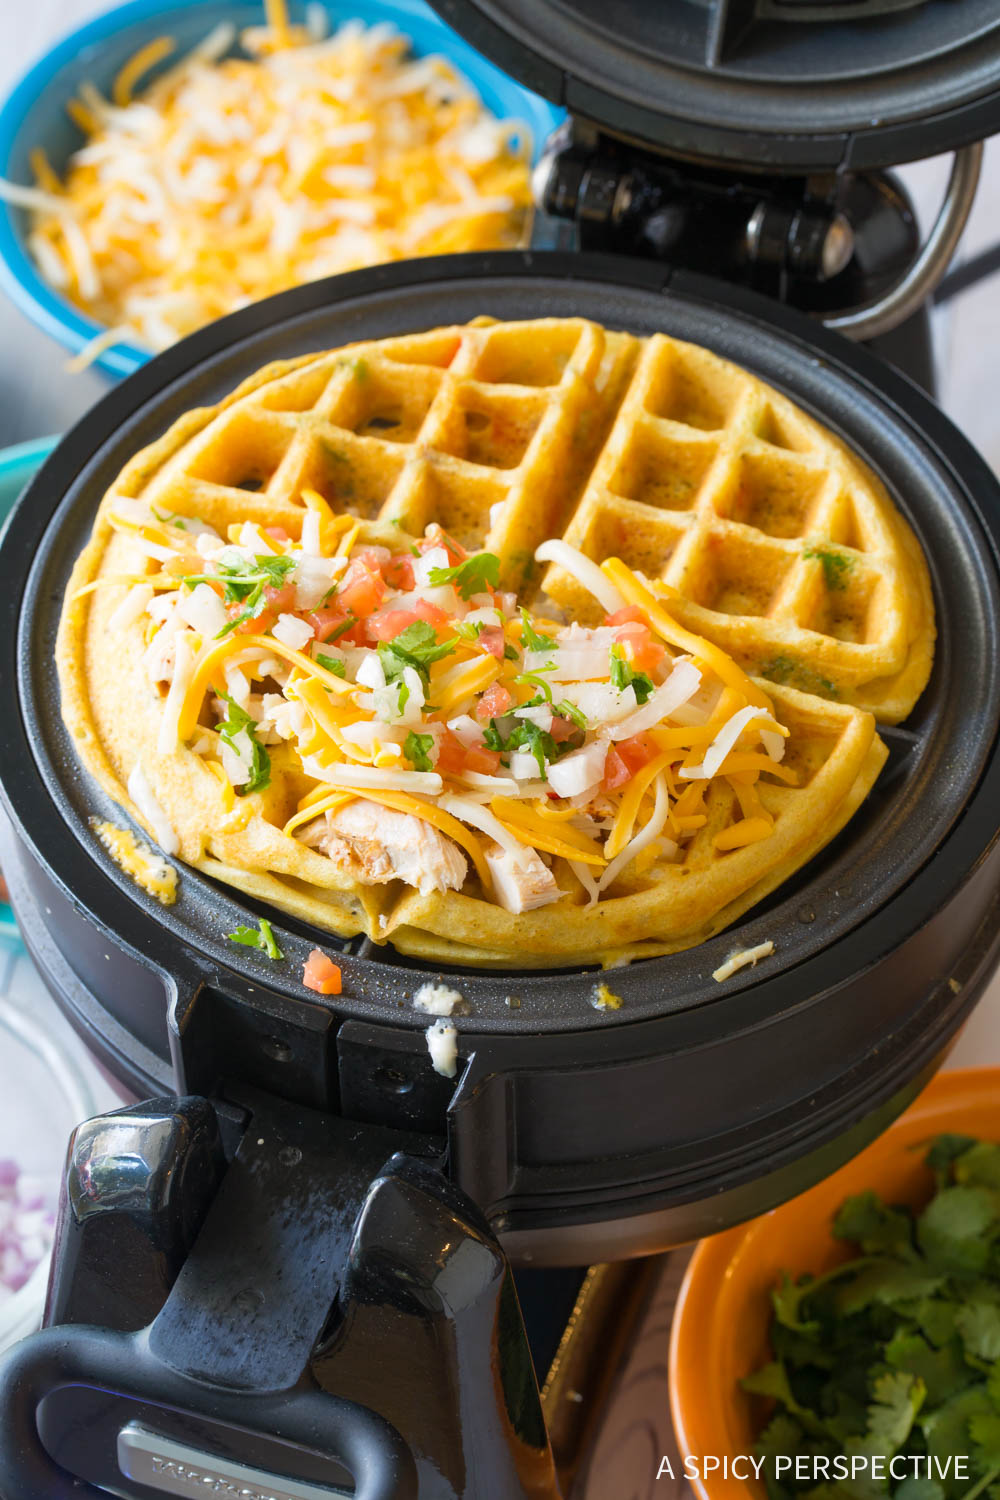 How to Make Waffle Iron Quesadillas Recipe #ASpicyPerspective #onepot